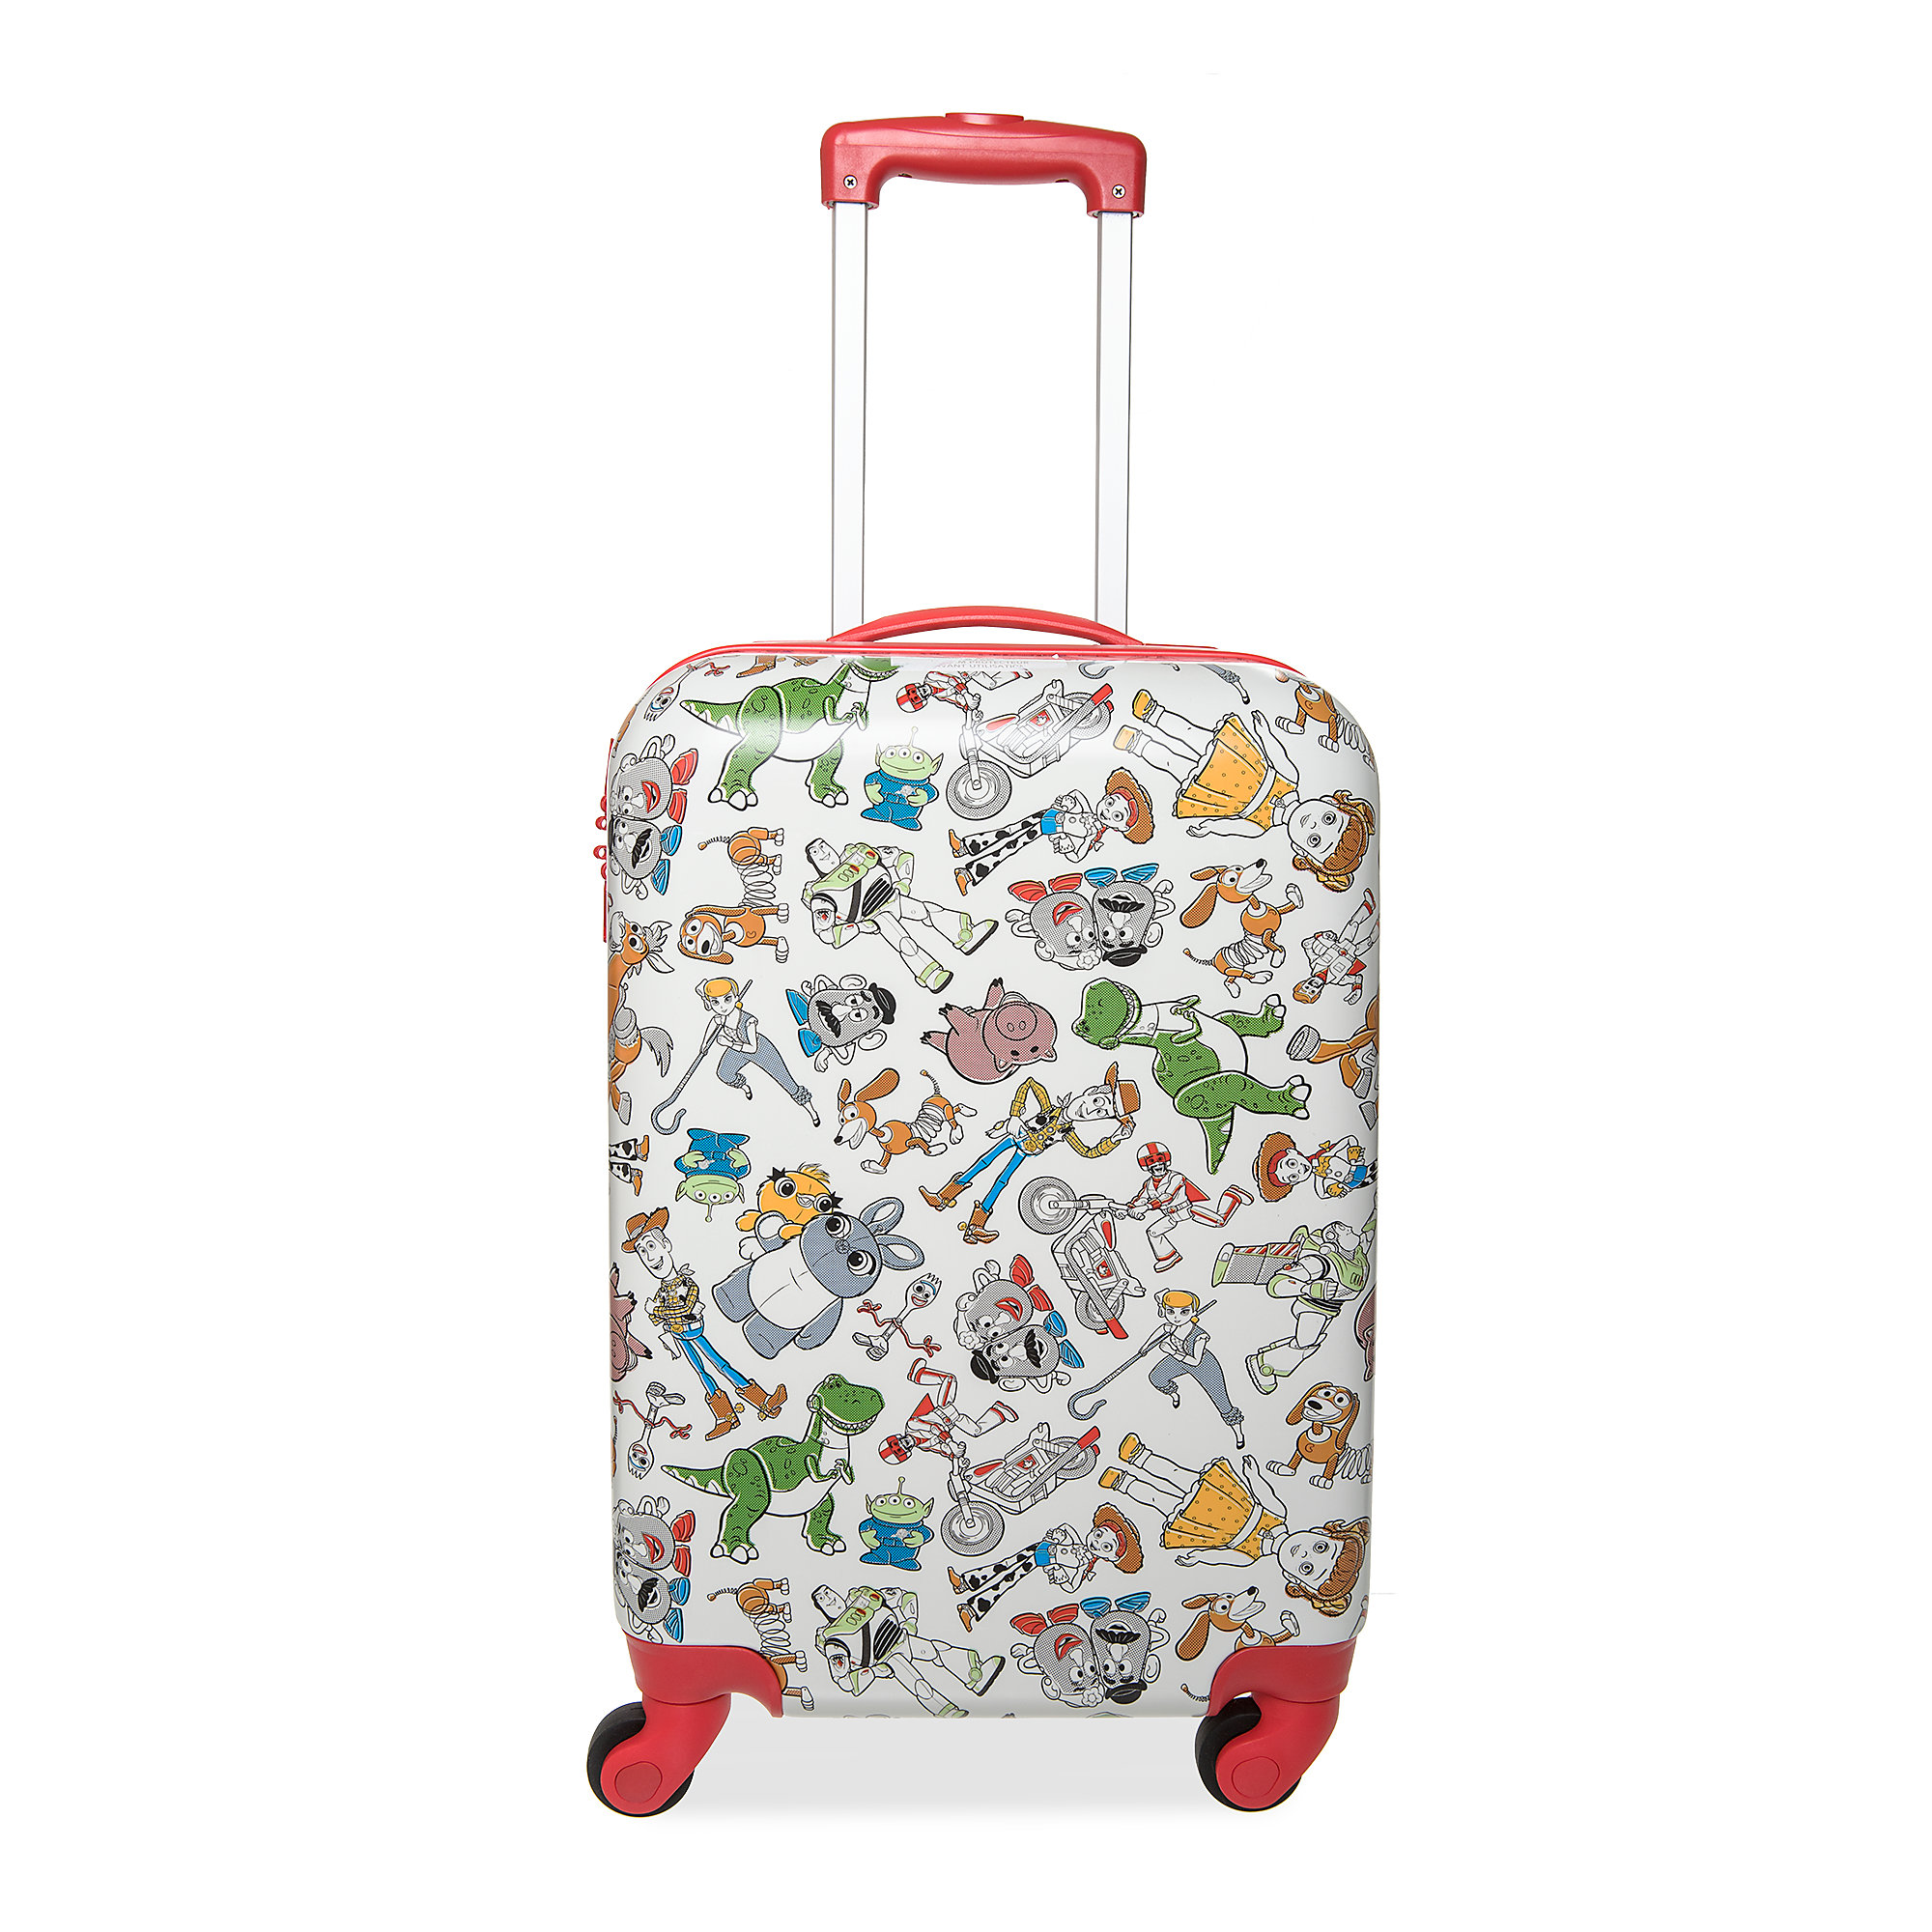 Toy Story 4 Rolling Luggage - Small